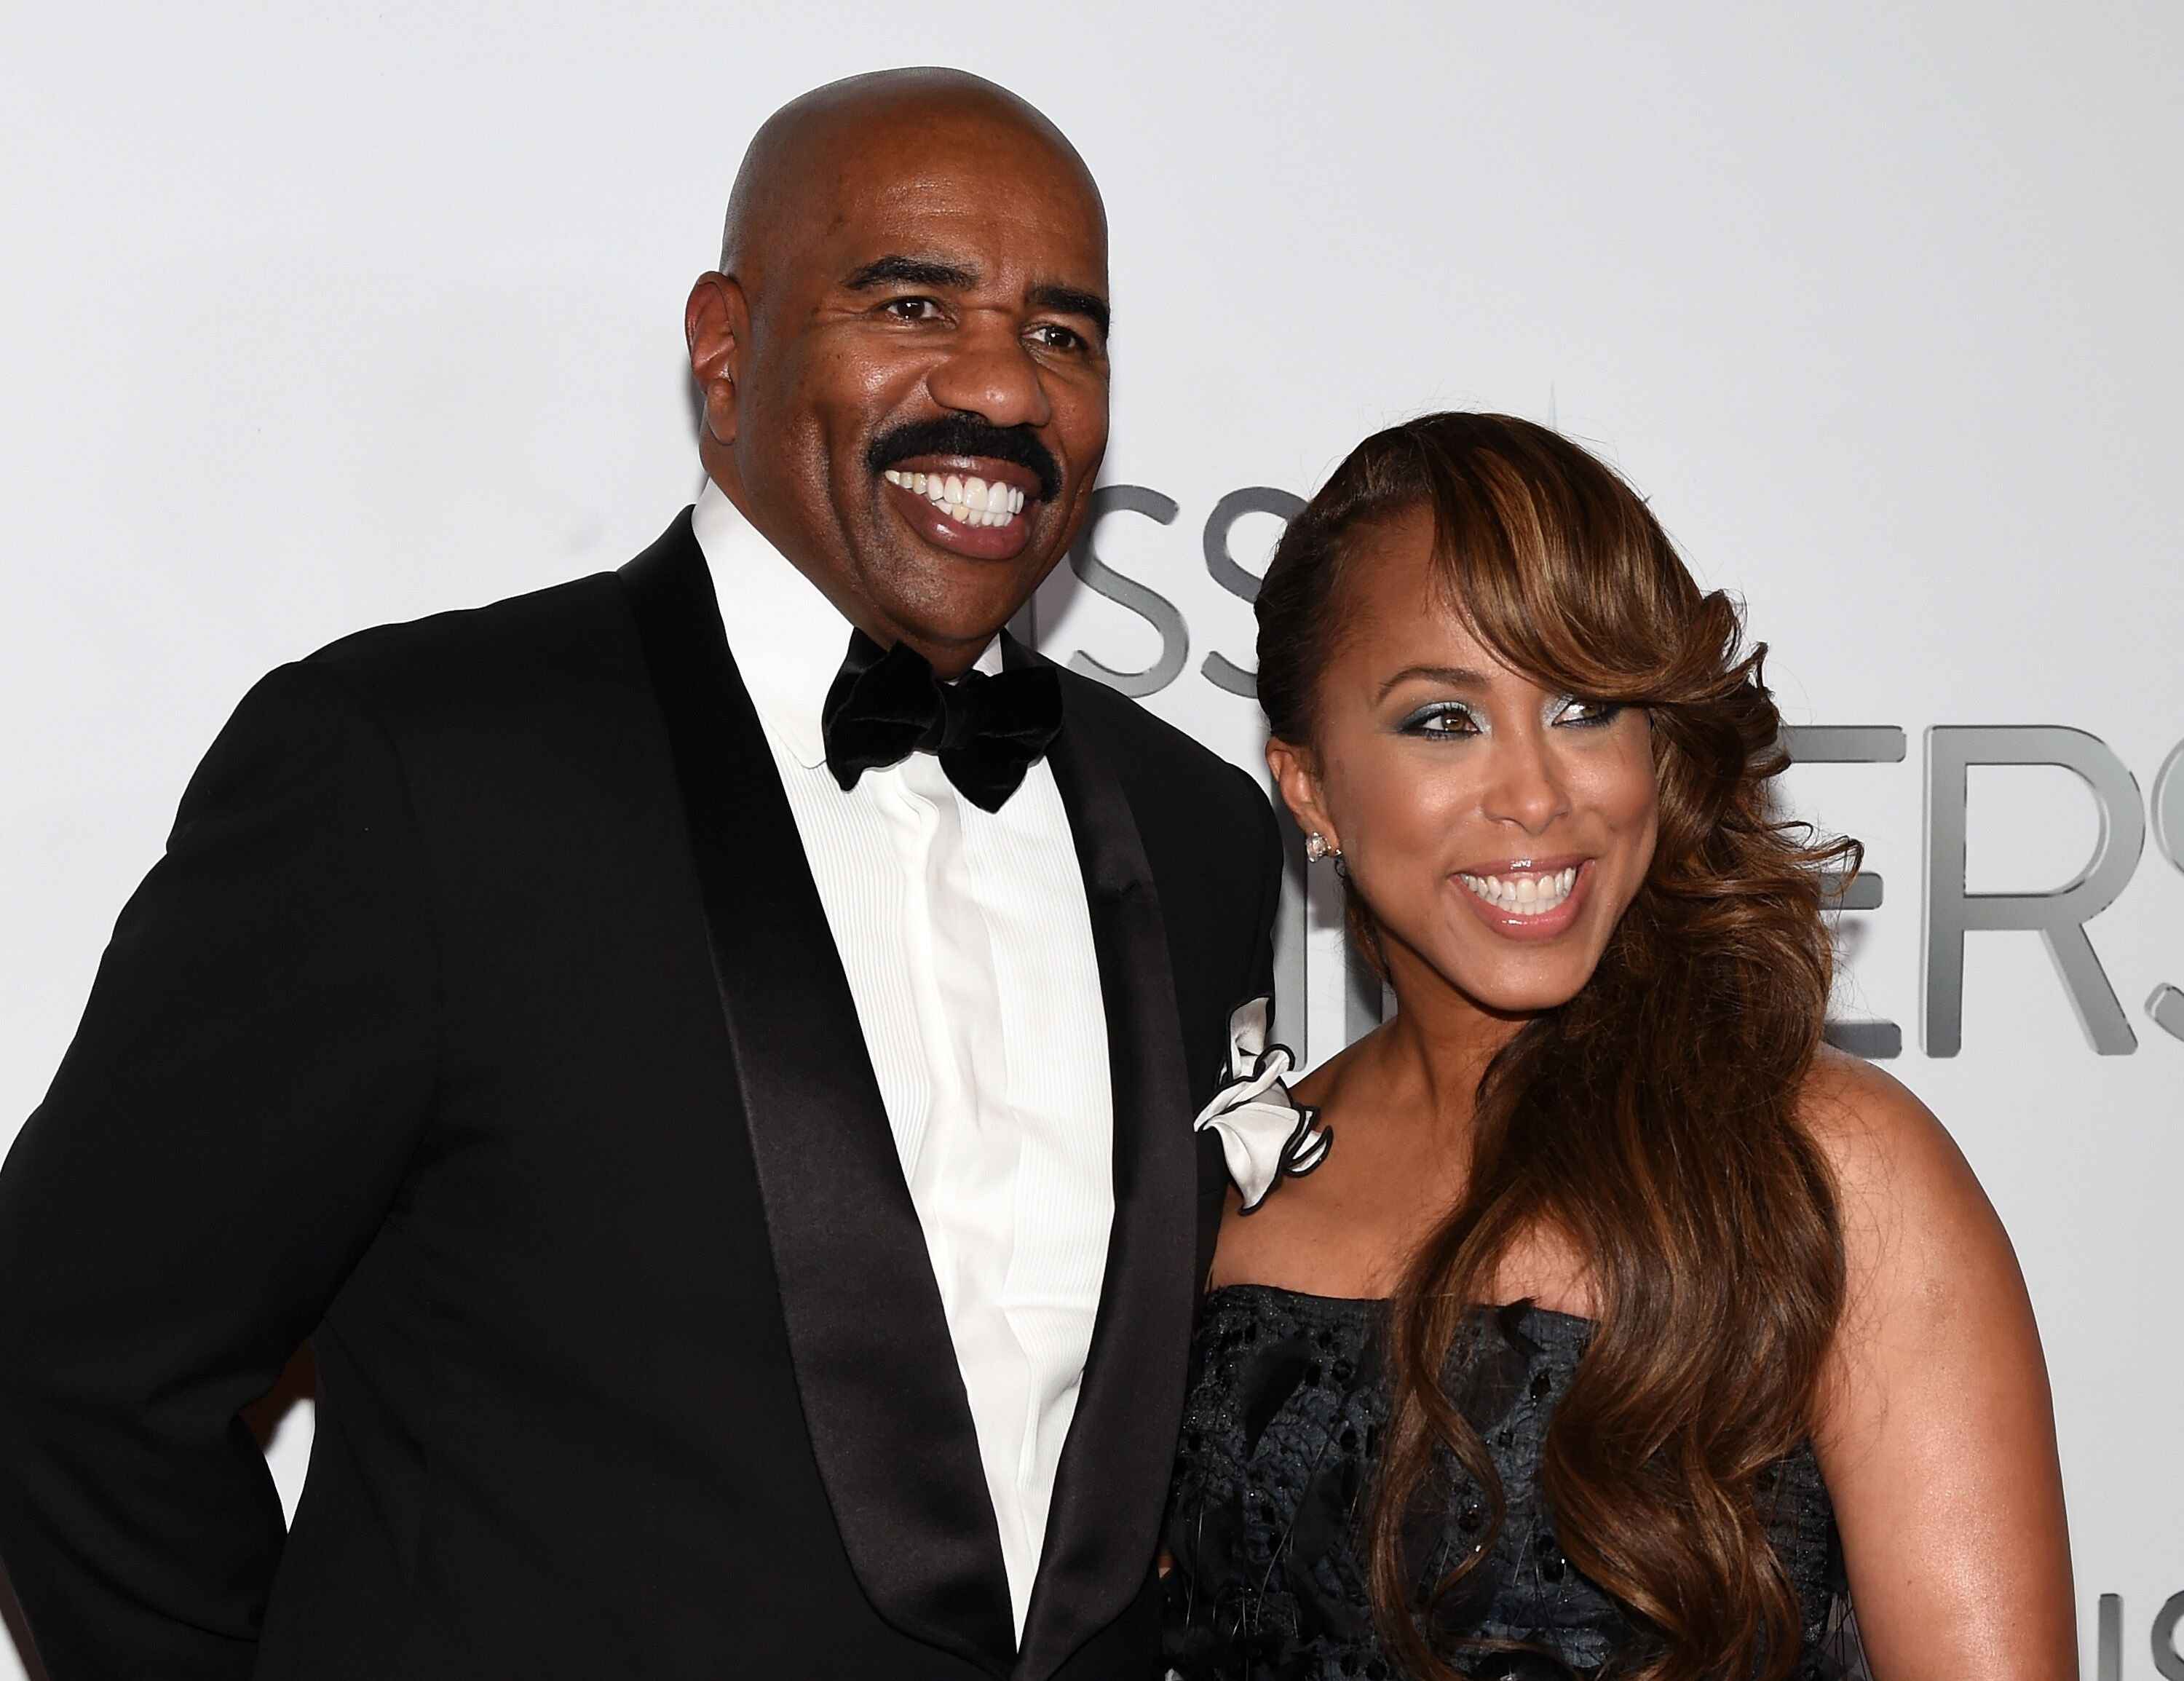 Steve Harvey and his wife Marjorie Harvey attend the 2015 Miss Universe Pageant at Planet Hollywood Resort & Casino on December 20, 2015. | Photo: Getty Images